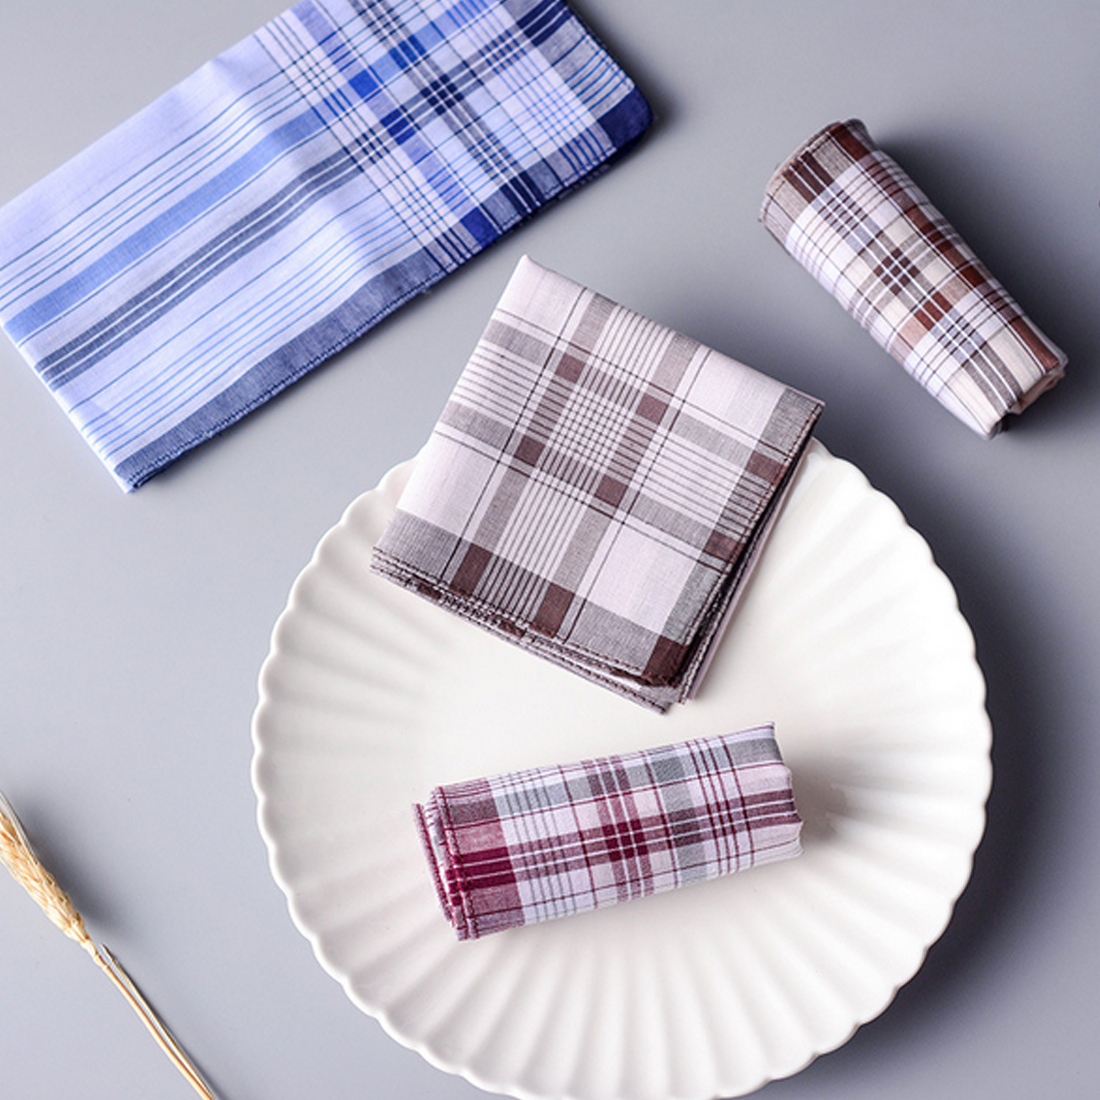 10Pcs/lot 38*38cm Hot Cotton Handkerchief Classic Plaid Pattern Comfort Vintage Square Handy Pocket Women Men For Gifts